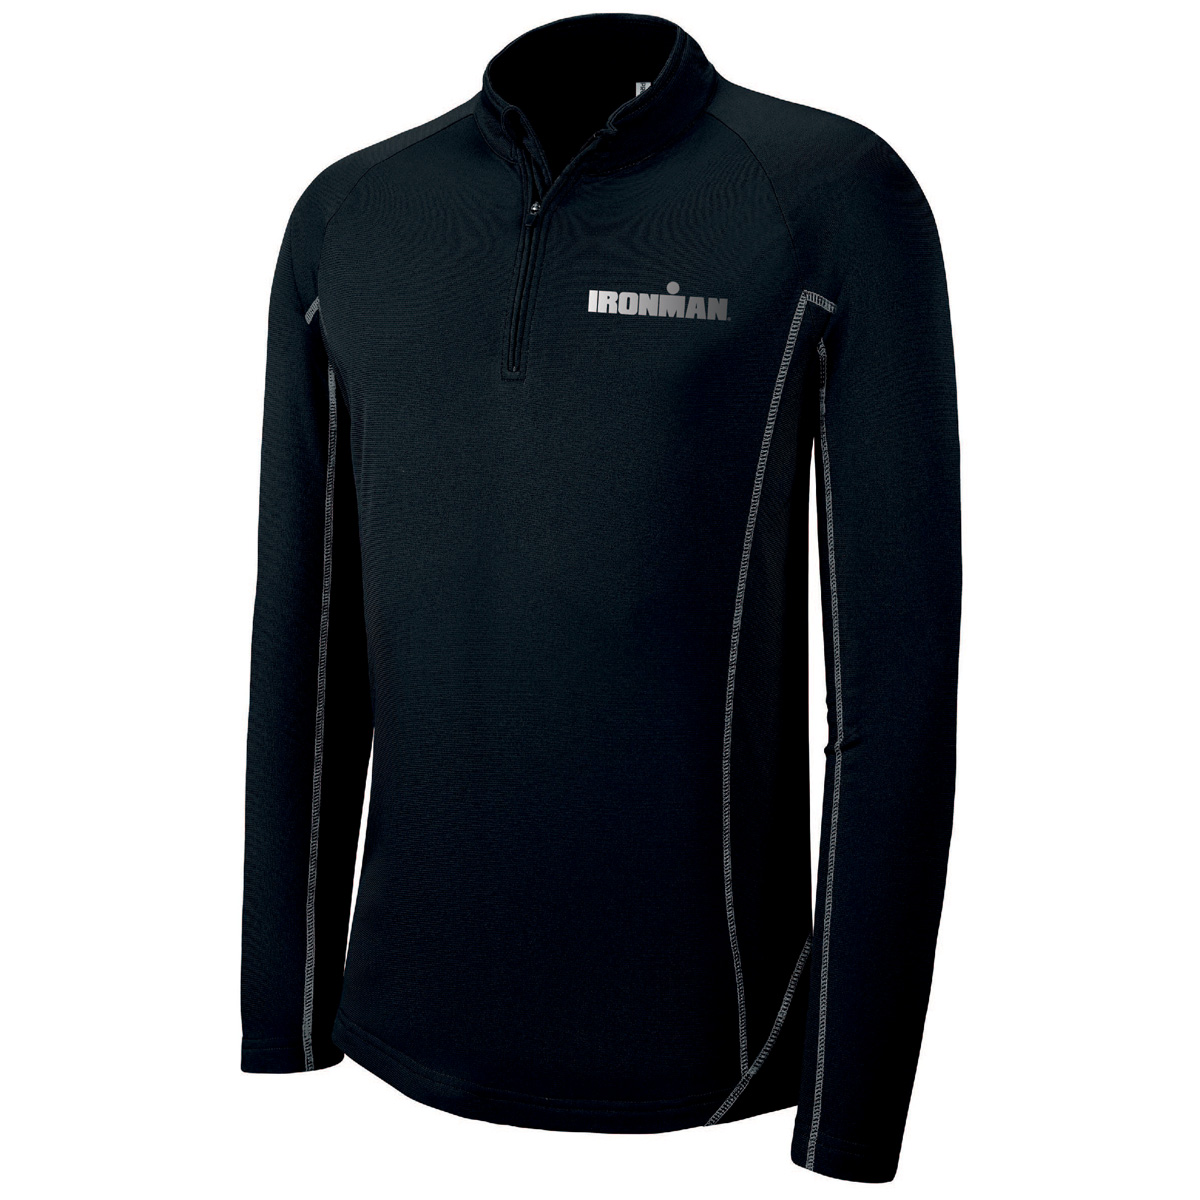 IRONMAN SANTINI MEN'S FINISHER HALF ZIP